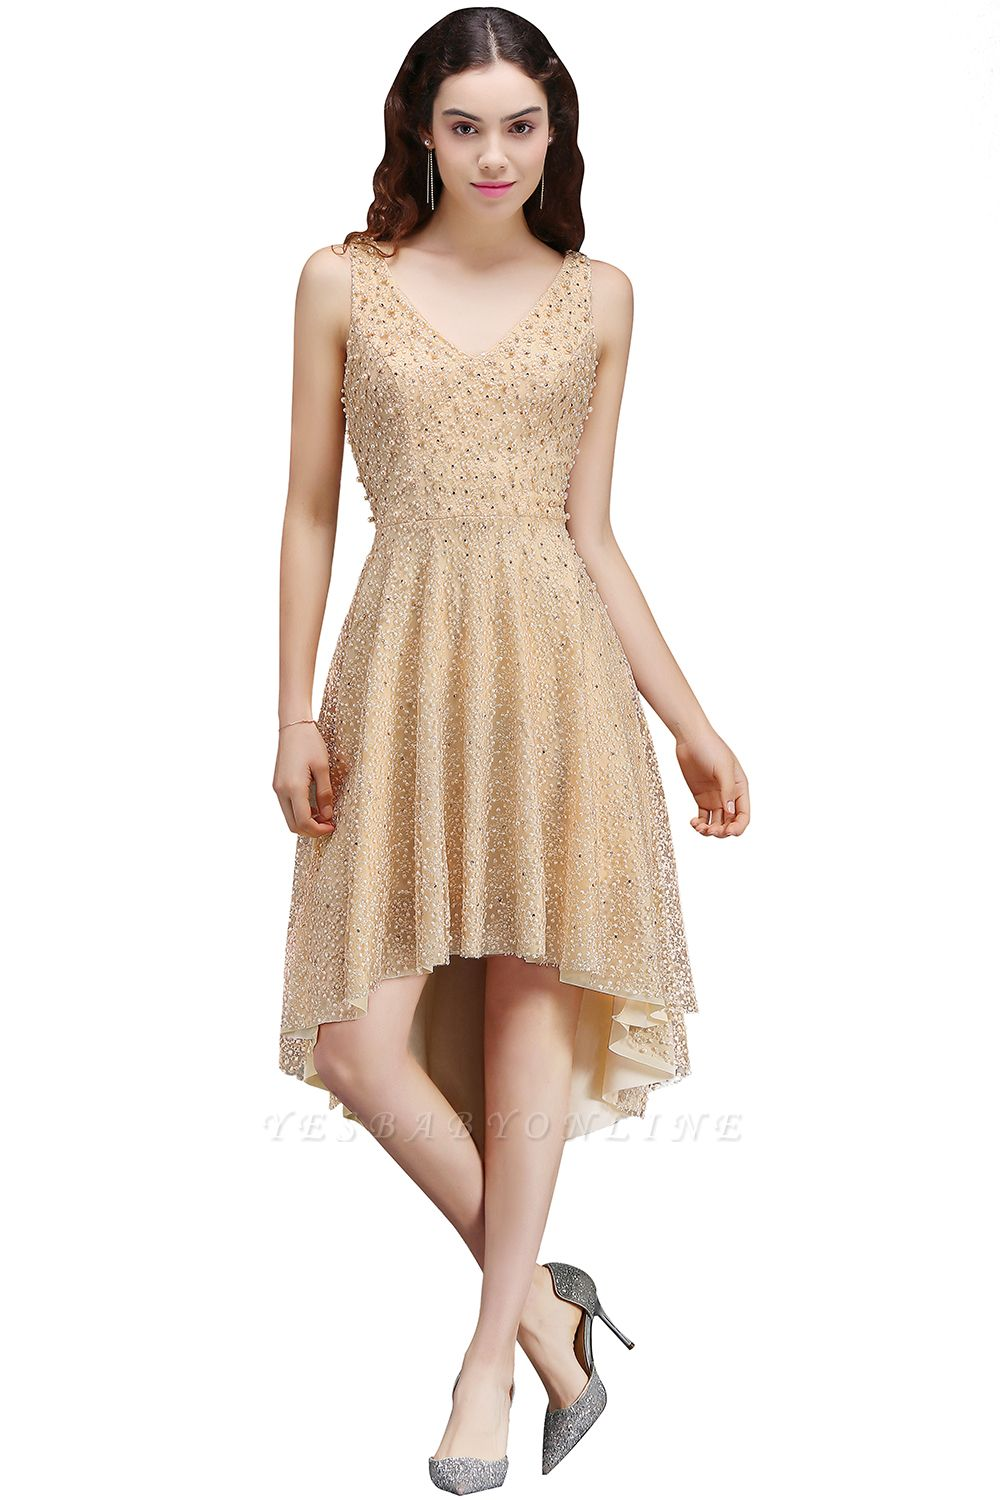 A-line Hi-Lo Popular Homecoming Dress With Pearls